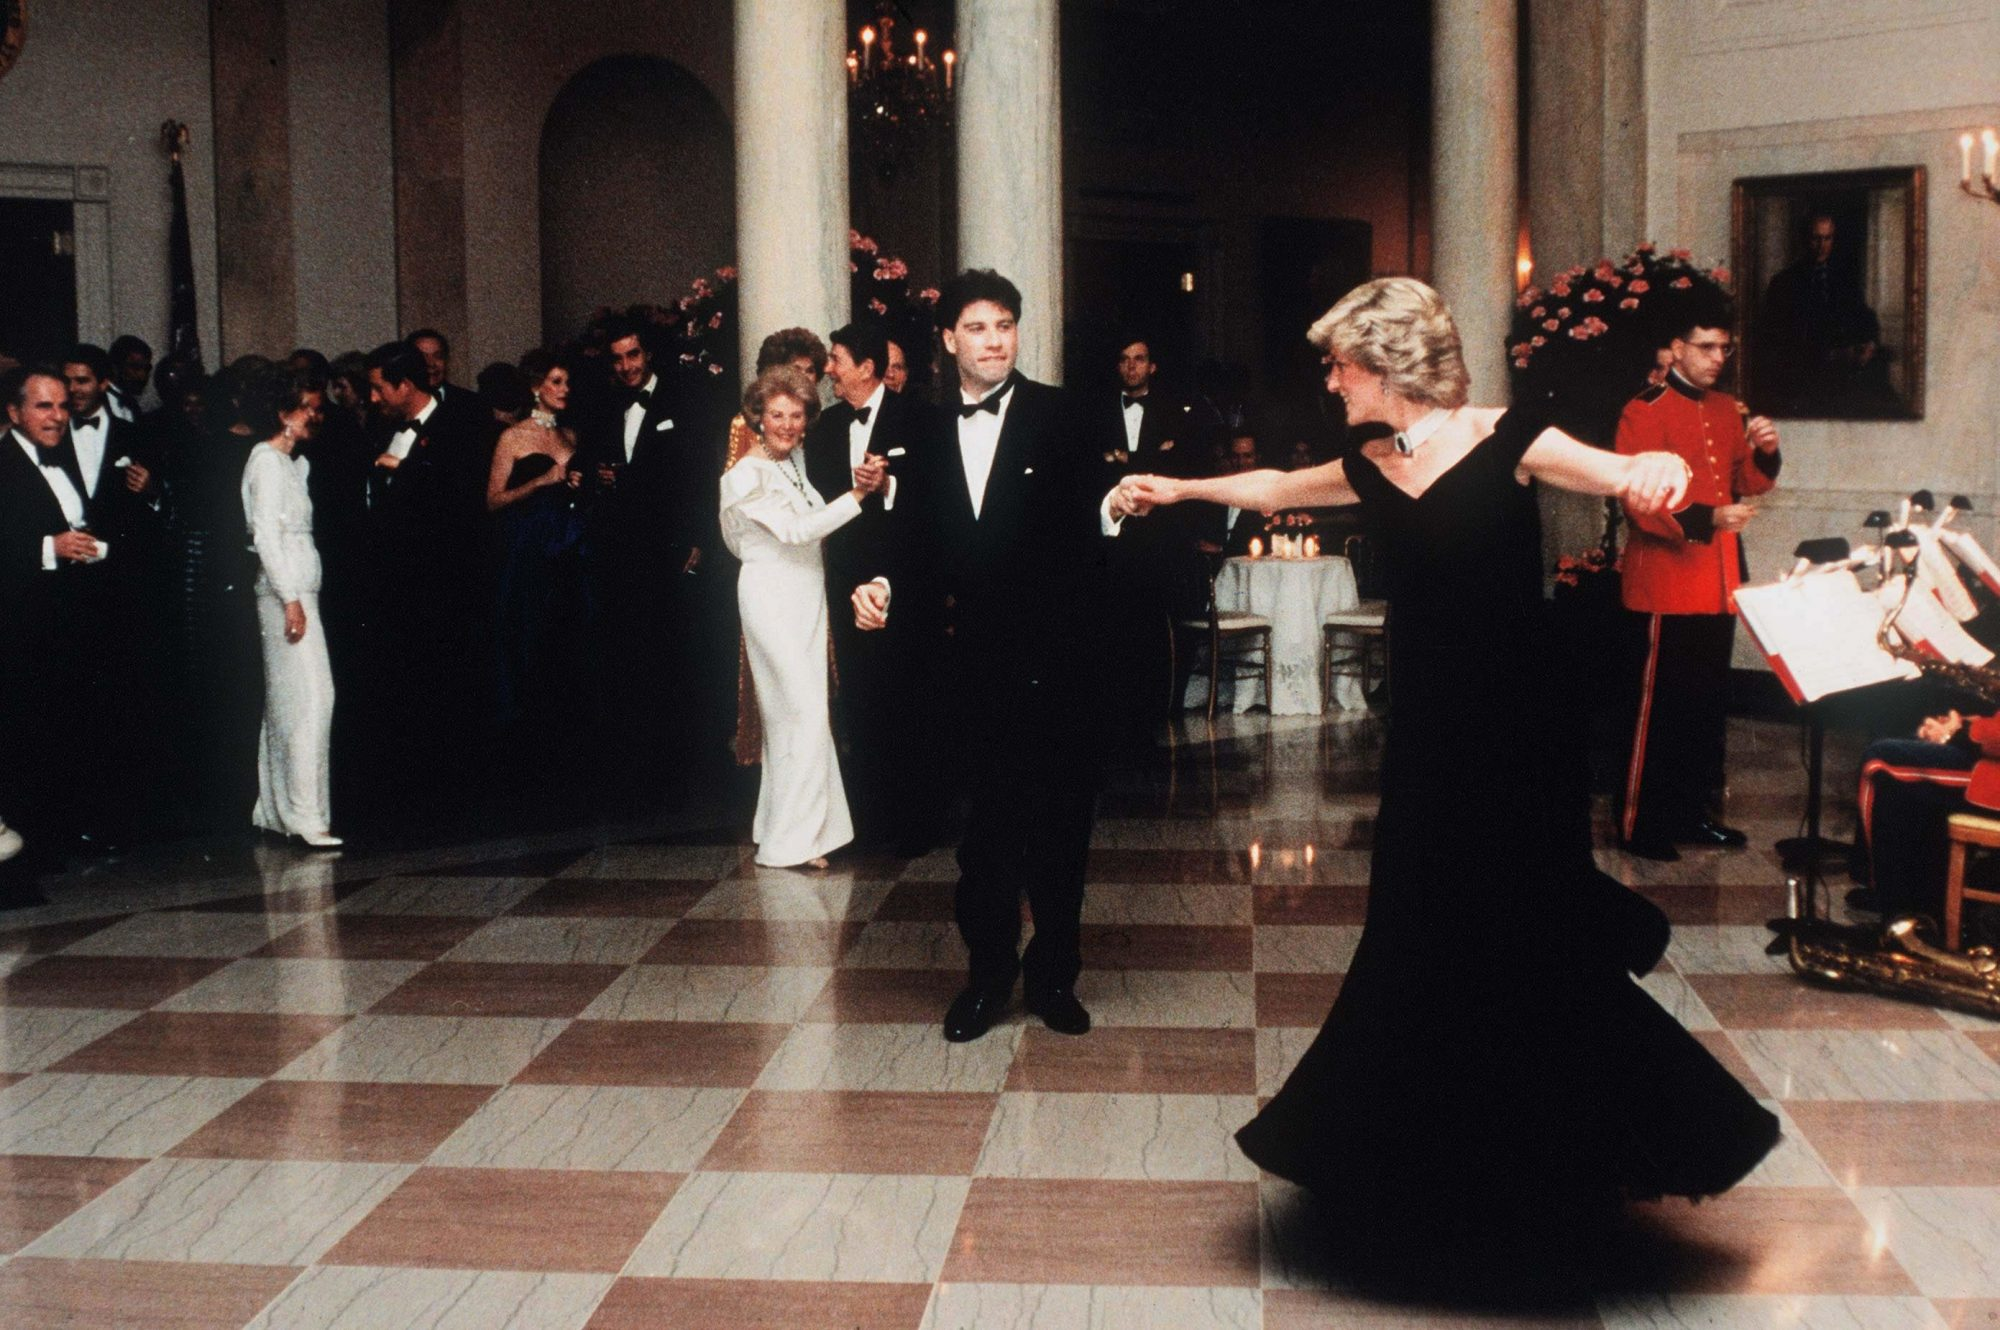 What John Travolta Was Thinking During His Famed Dance with Princess Diana at The White House